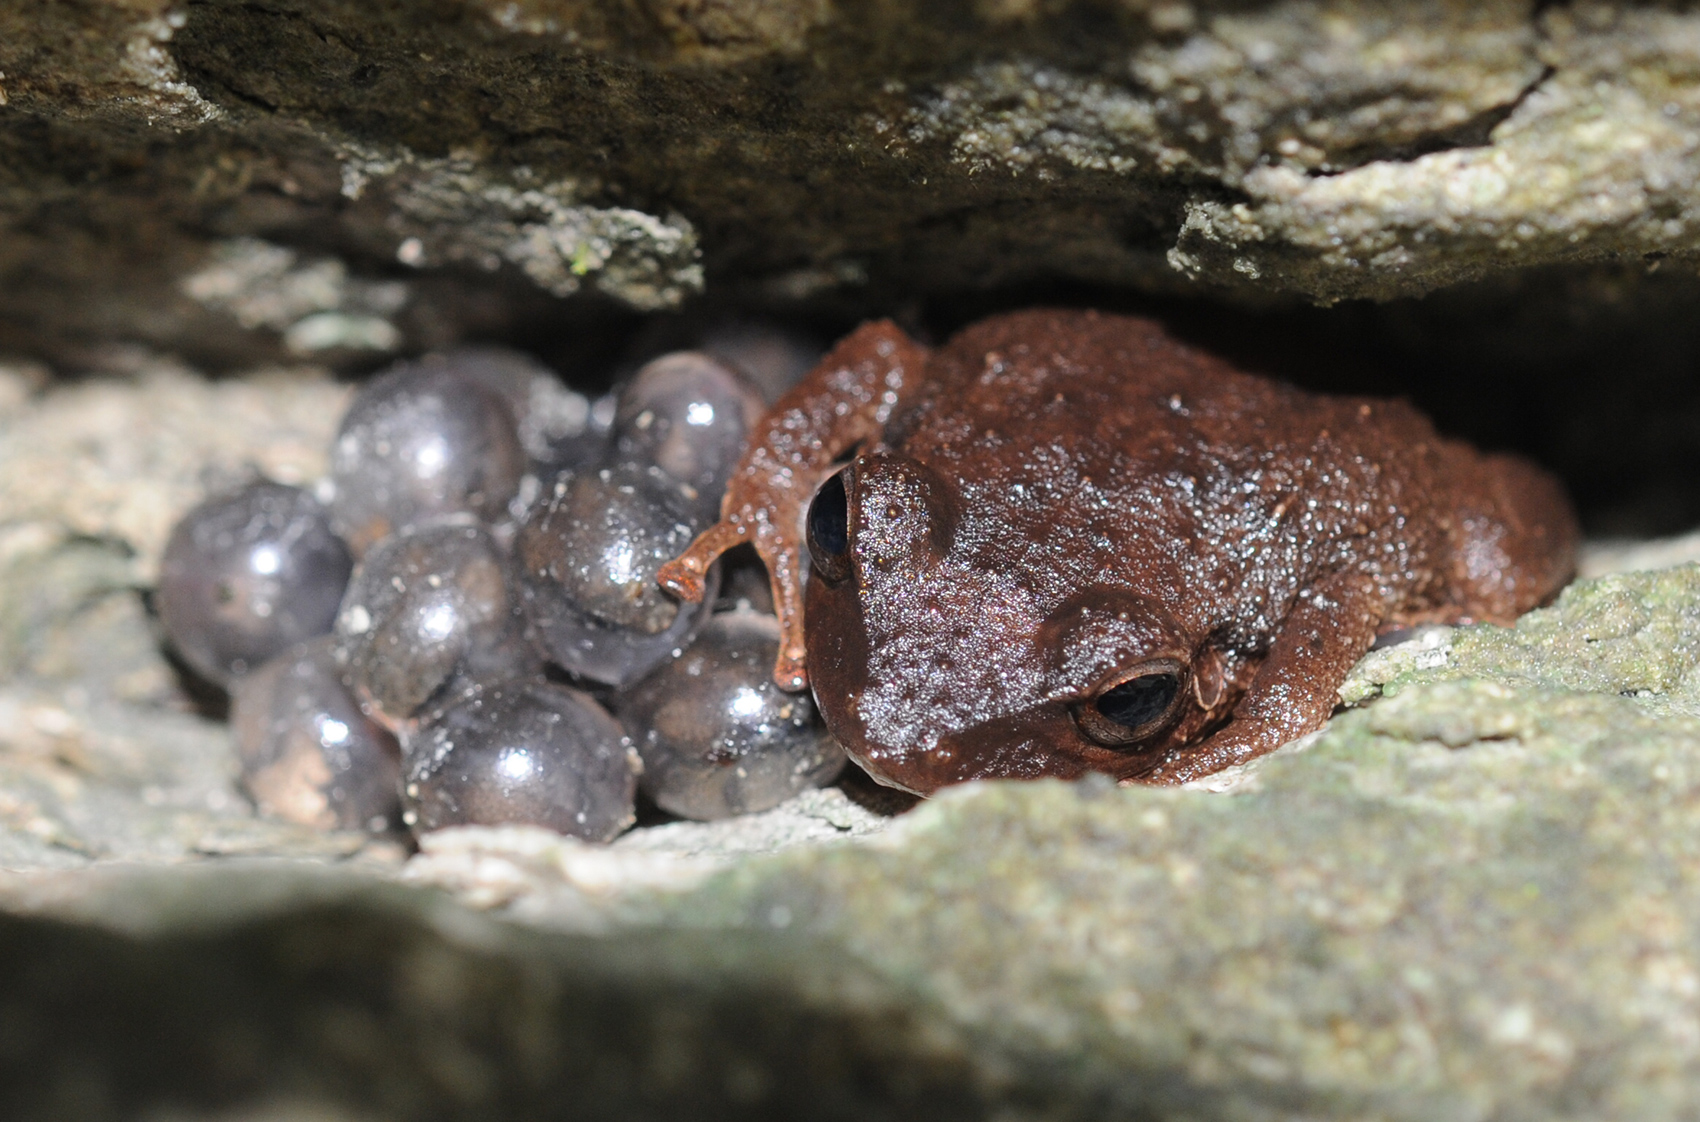 A brown frog sits over gray-looking eggs under a rock